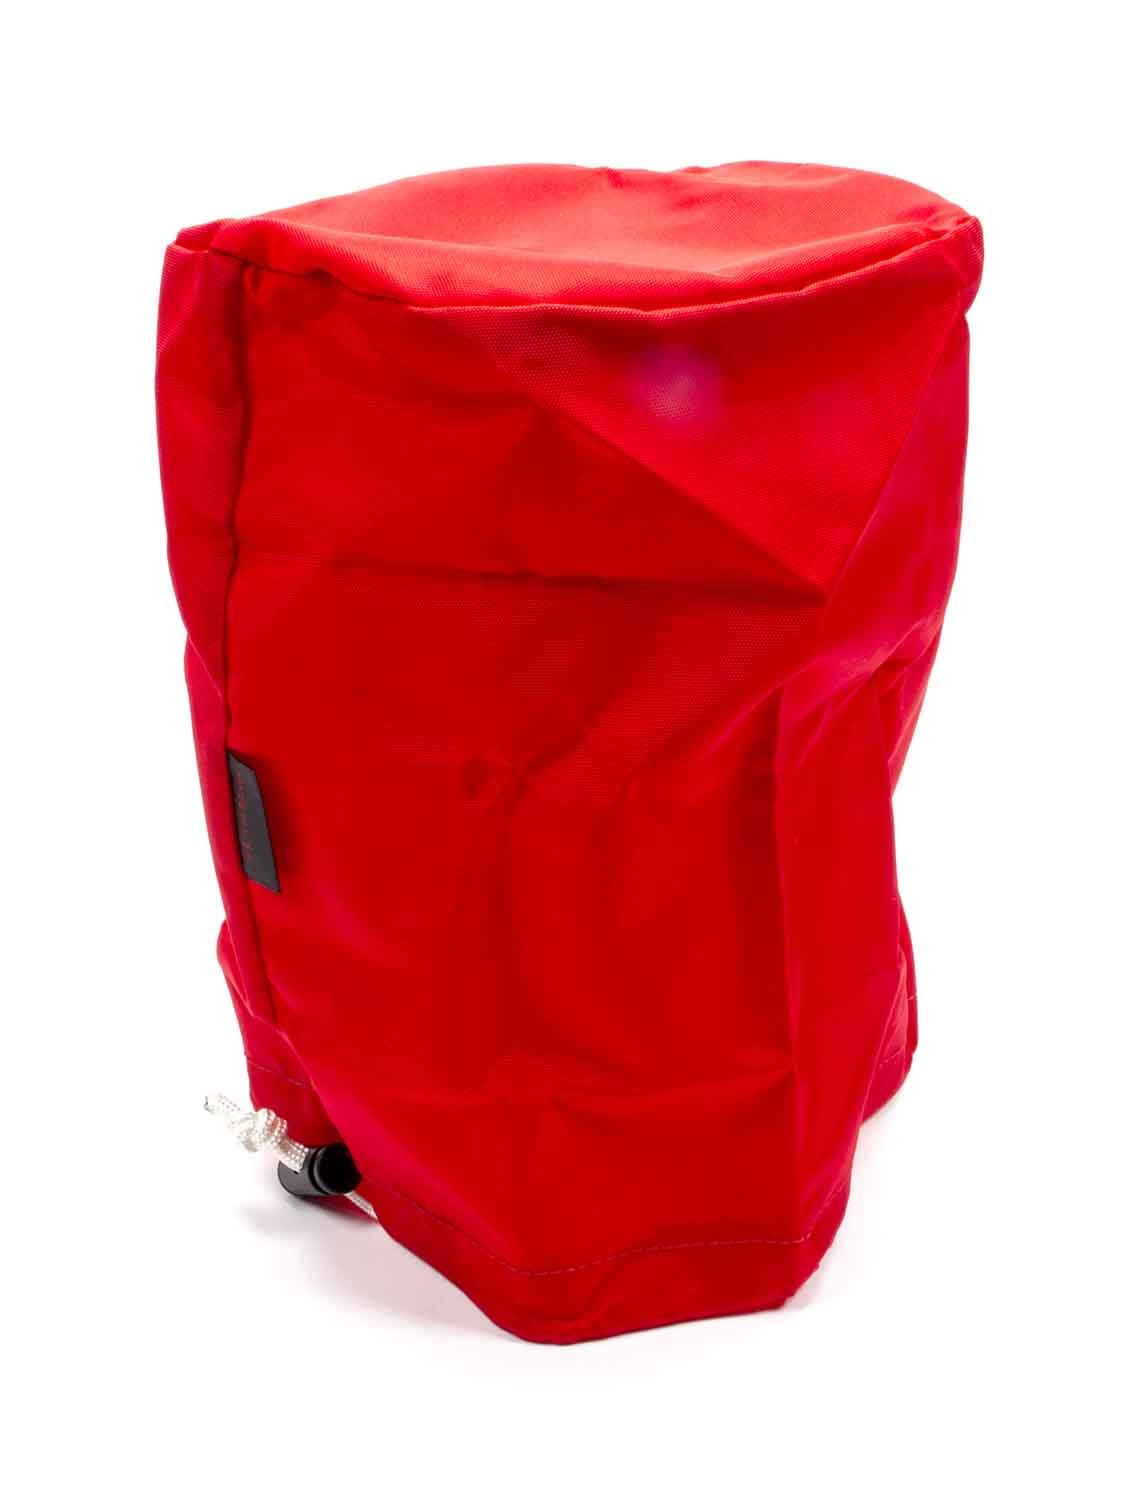 Outerwears 30-1264-03 Scrub Bag, Polyester, Red, Large Cap Magnetos, Each